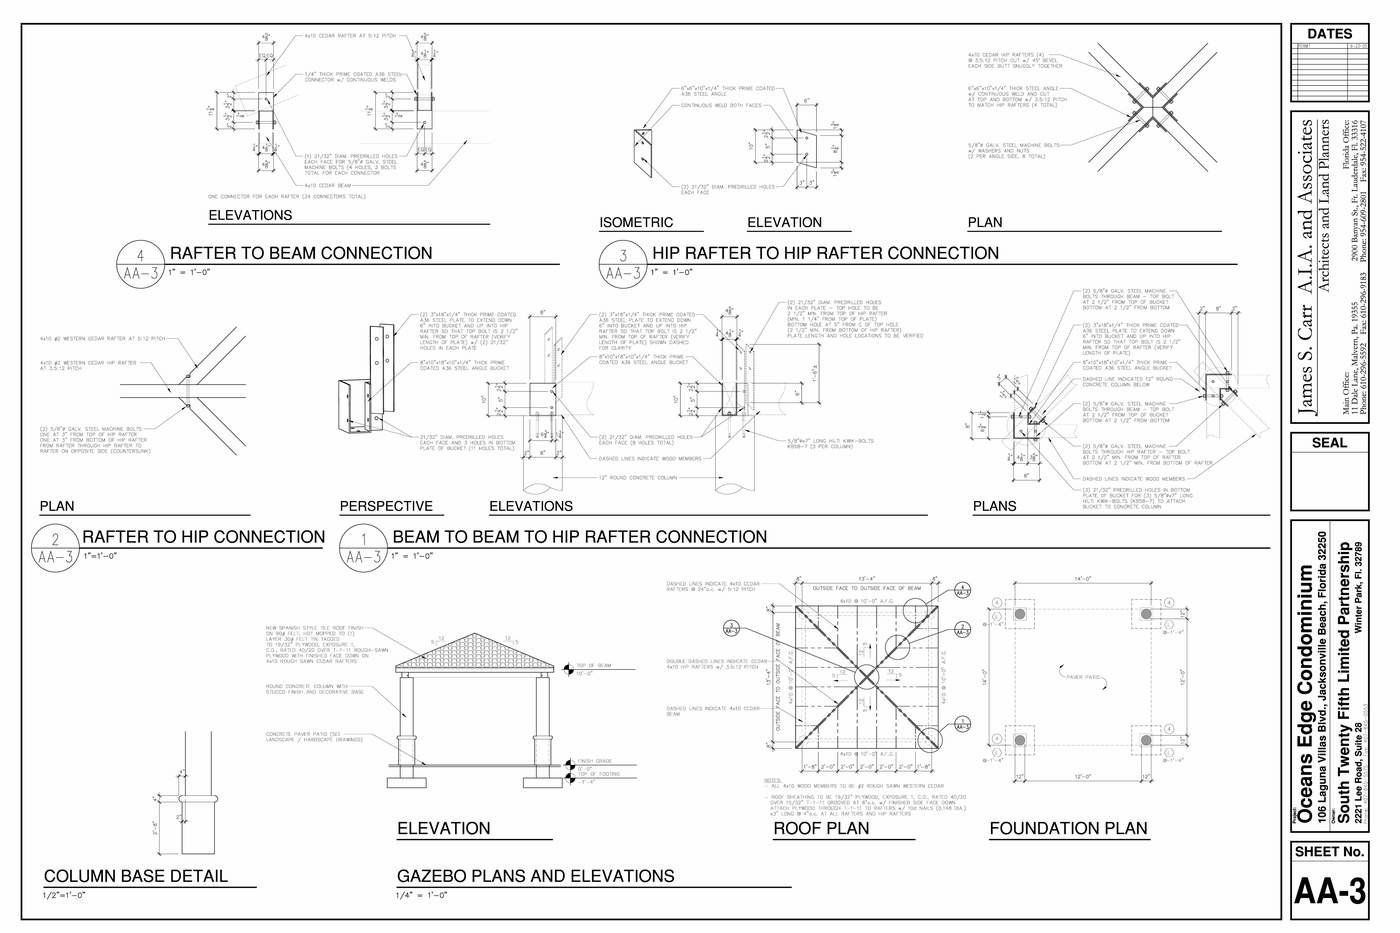 Oceans Edge Condominium Jacksonville Fl Drawings By James Feucht At Cbr 954rr Wiring Diagram Gazebo